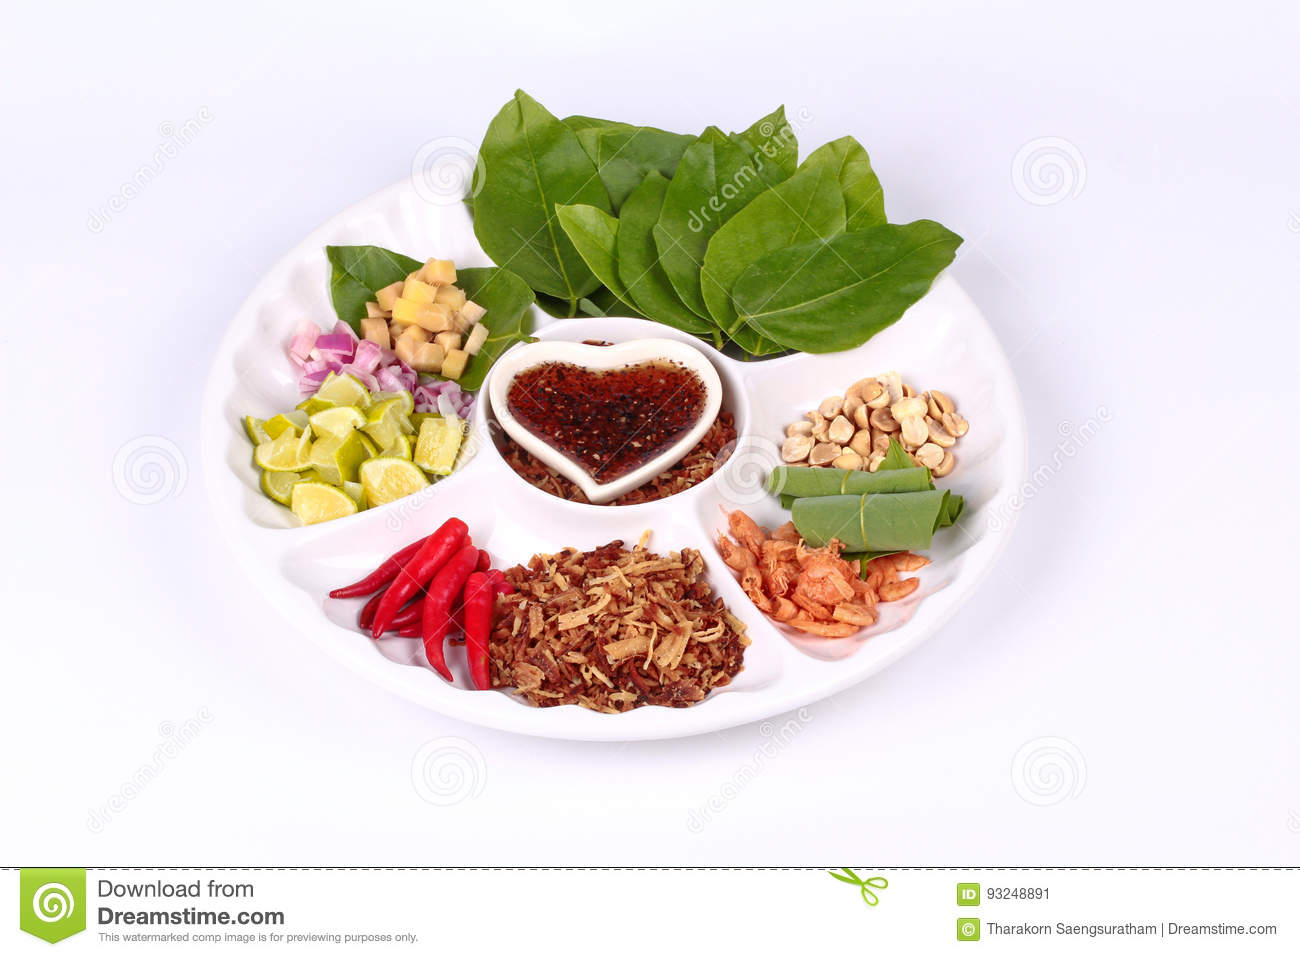 Leaf-Wrapped Bite-Size Appetizer, Miang